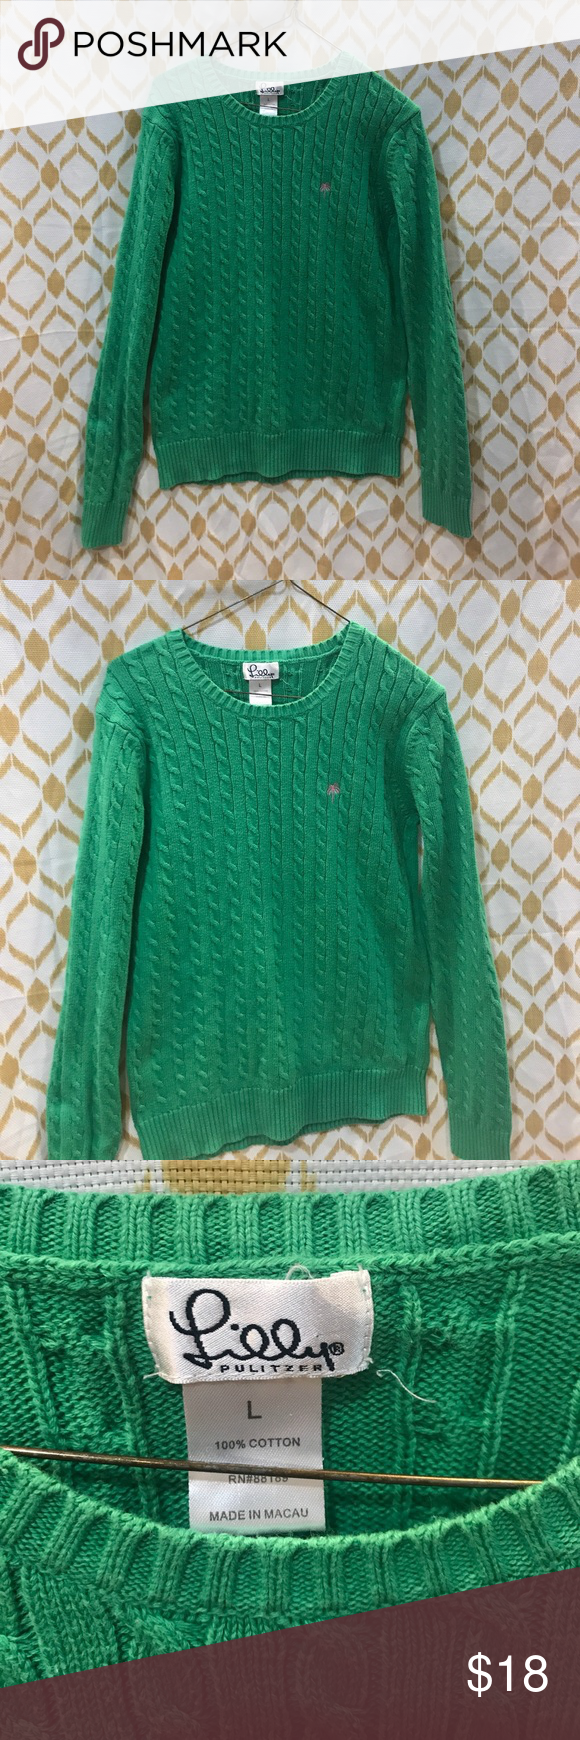 Lilly Pulitzer crew neck cable knit sweater Large | Cable knit ...